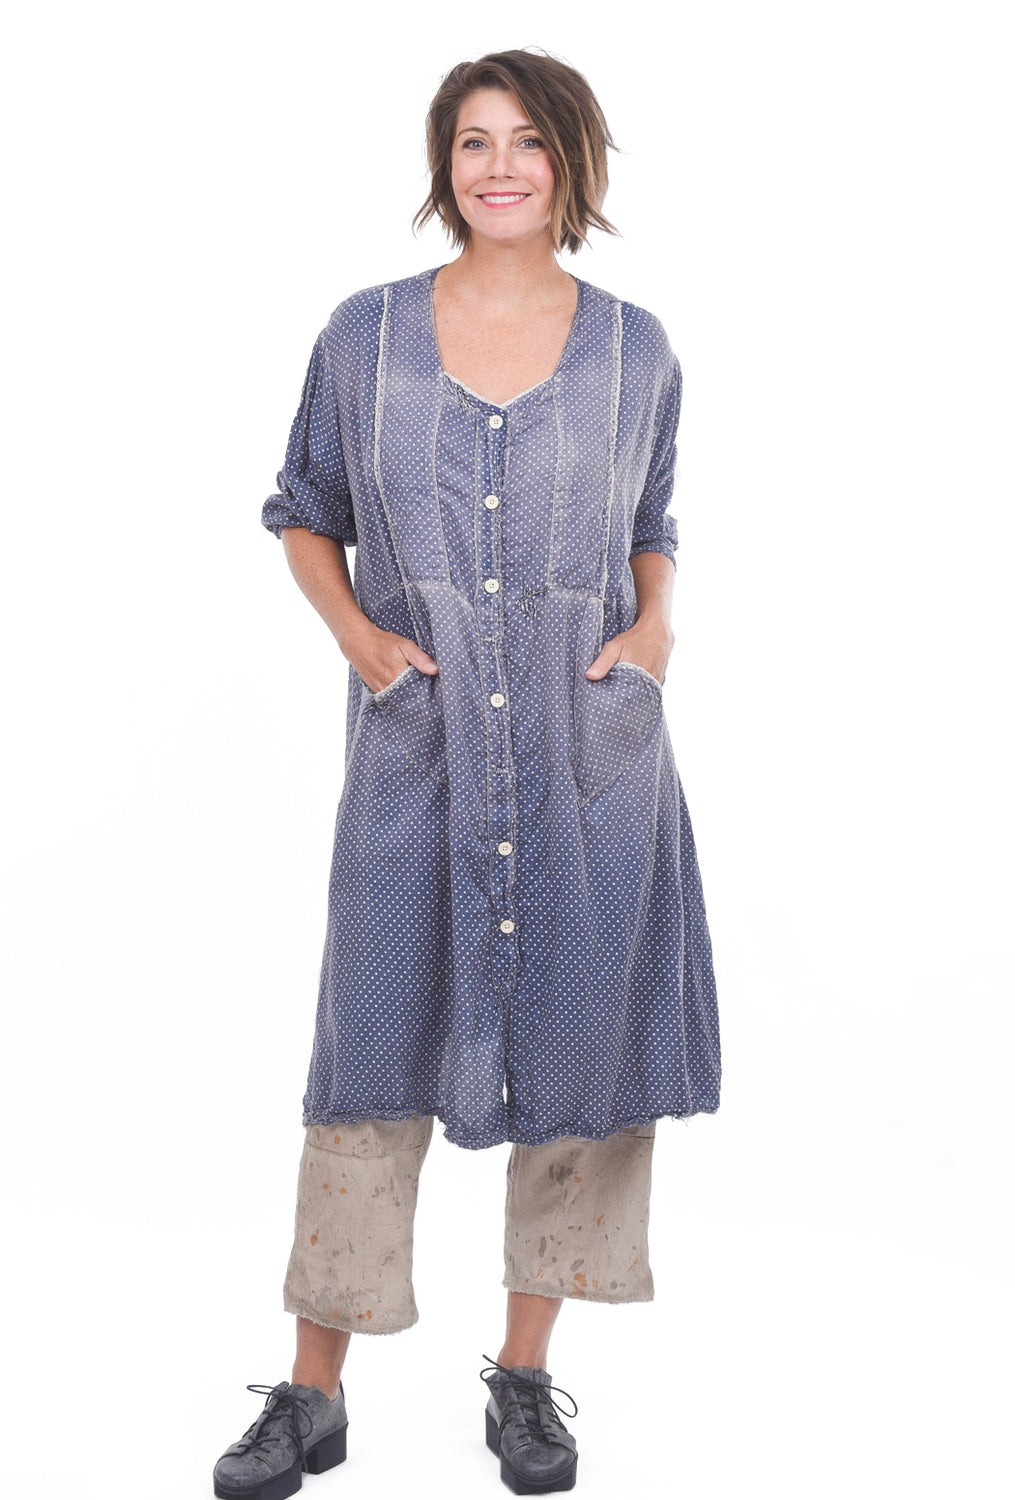 Magnolia Pearl St. Anny Smock Dot Dress, Sundry Blue One Size Blue